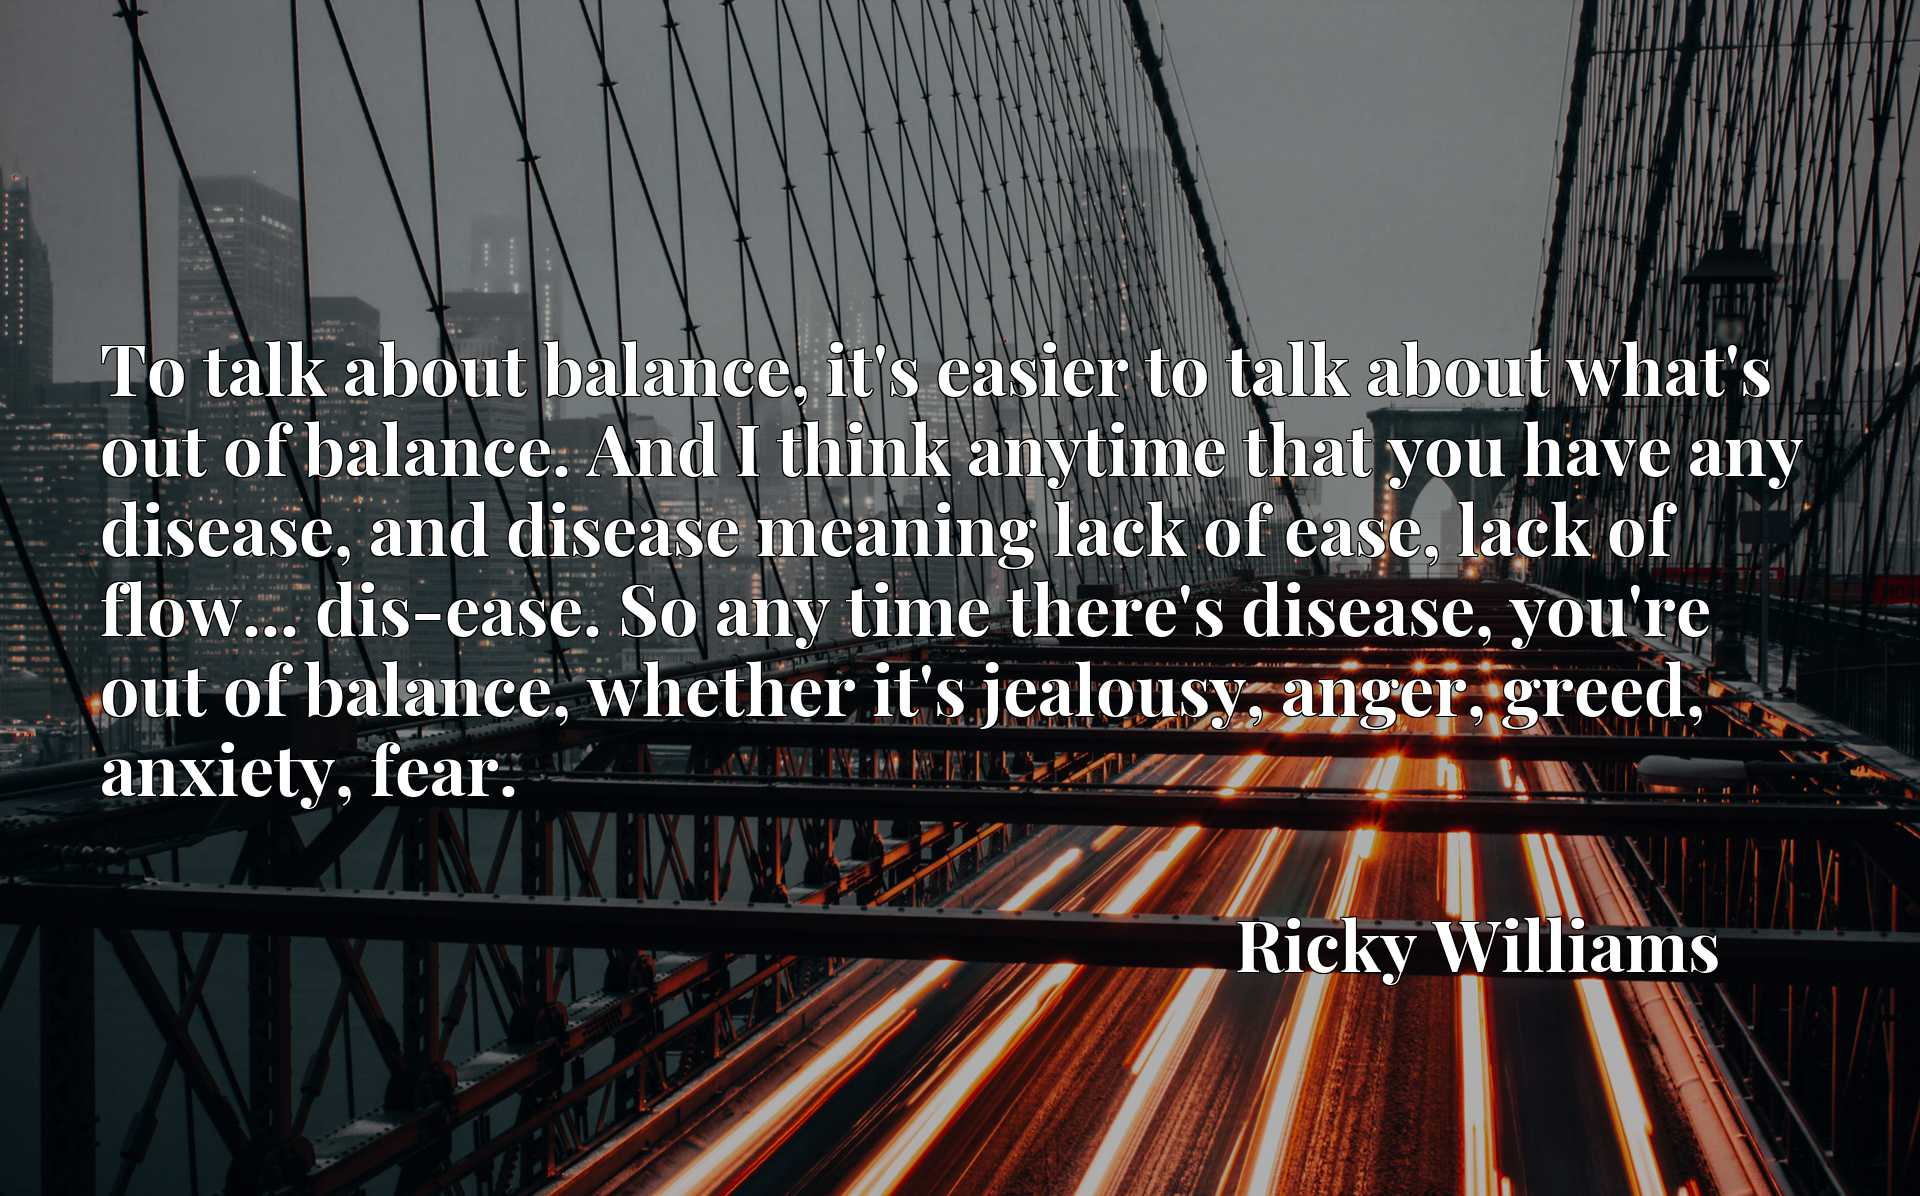 To talk about balance, it's easier to talk about what's out of balance. And I think anytime that you have any disease, and disease meaning lack of ease, lack of flow... dis-ease. So any time there's disease, you're out of balance, whether it's jealousy, anger, greed, anxiety, fear.